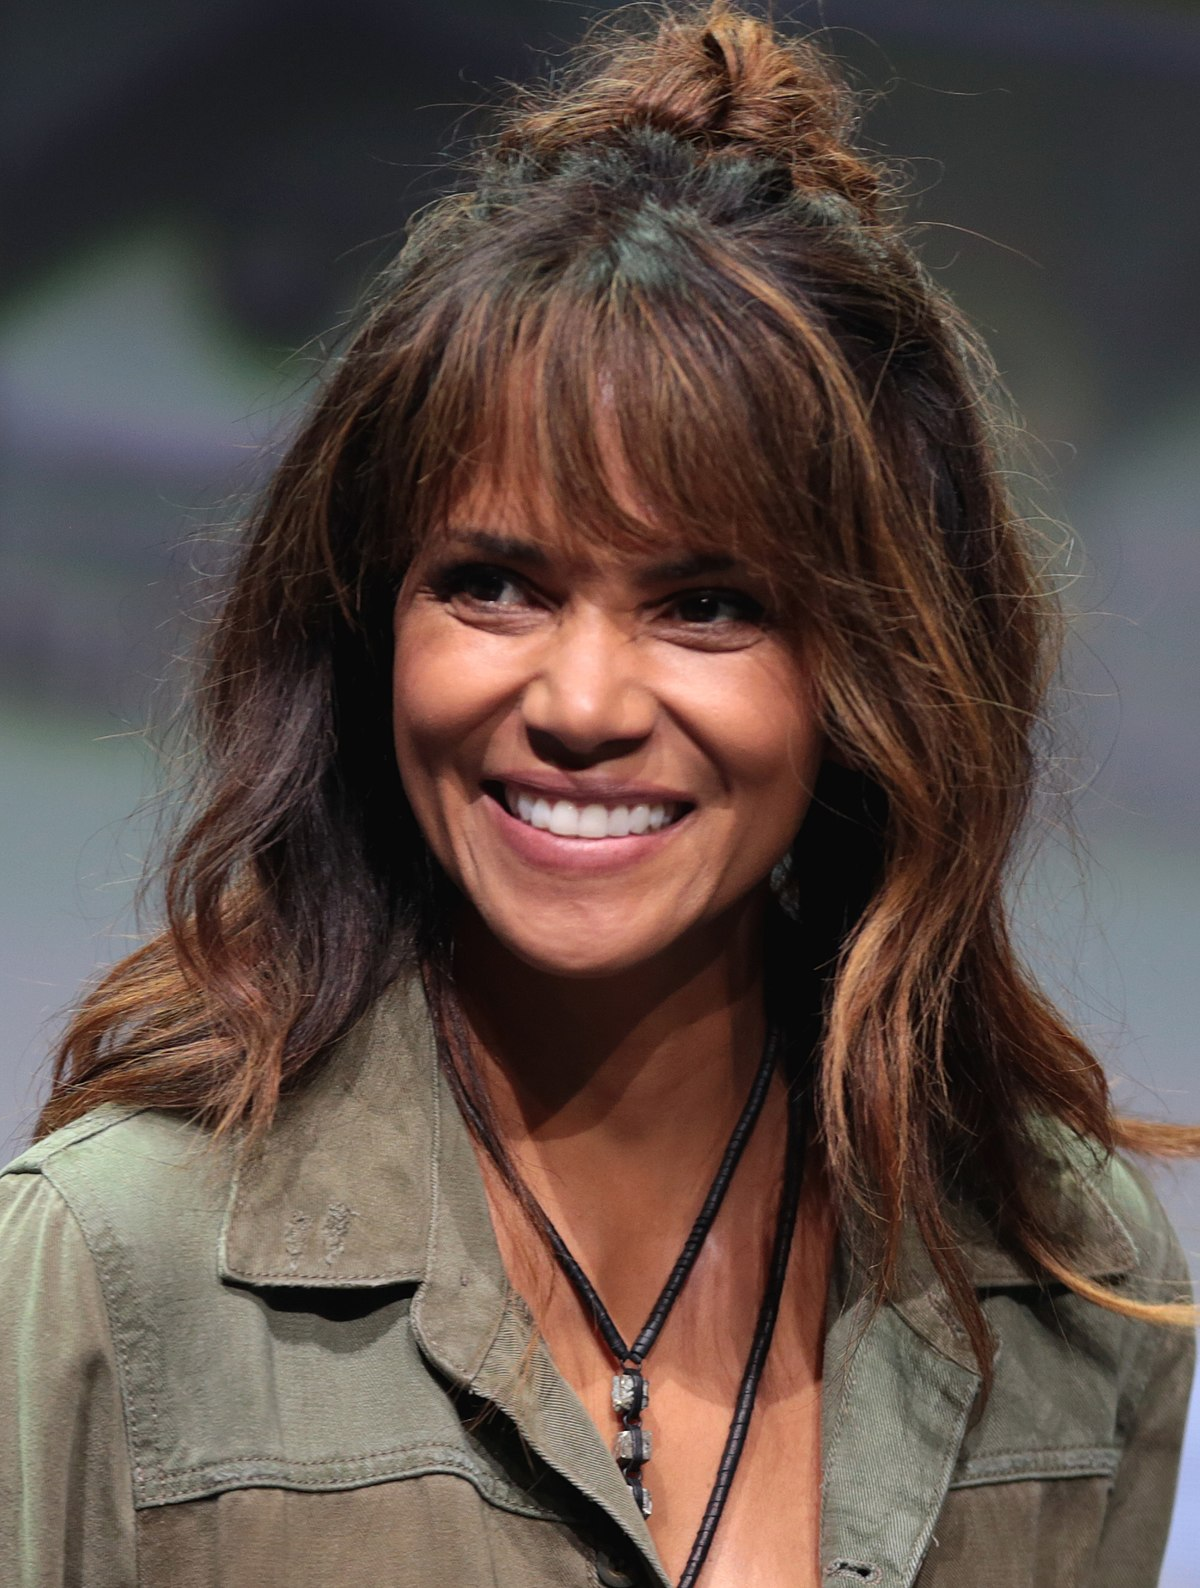 Halle Berry Wikipedia Stream tracks and playlists from jennifer hearn on your desktop or mobile device. halle berry wikipedia